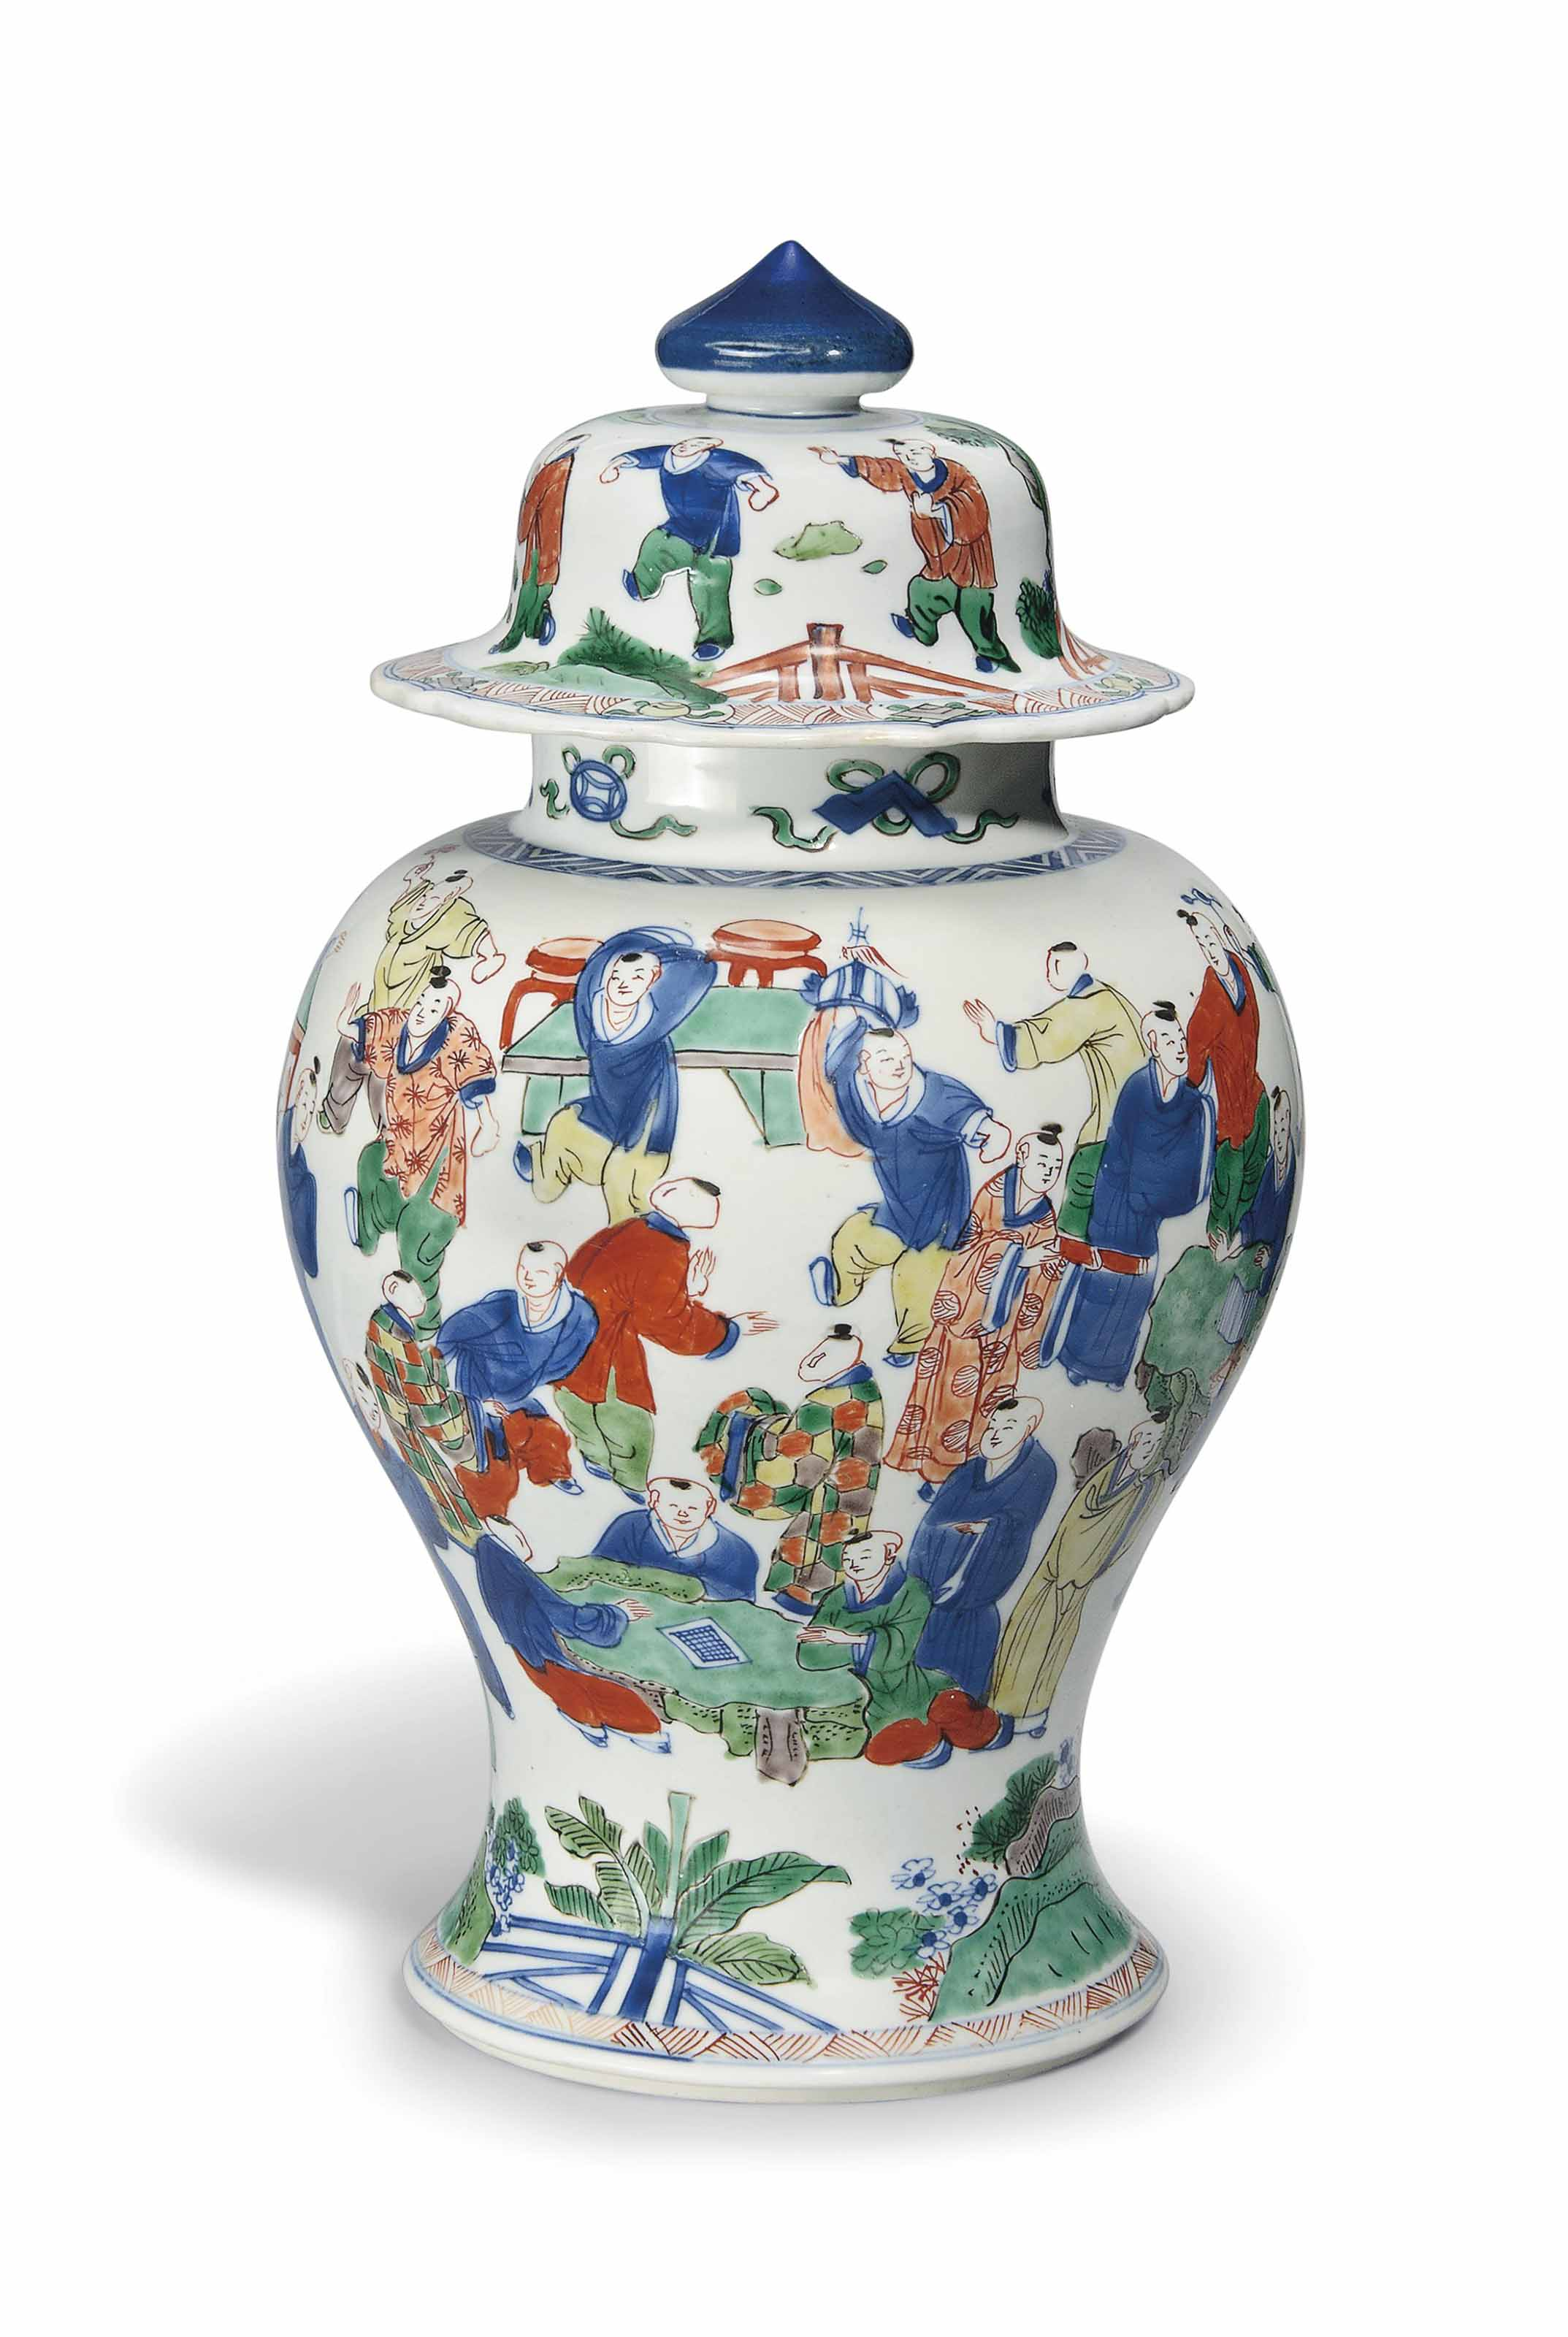 A WUCAI 'HUNDRED BOYS' VASE AN